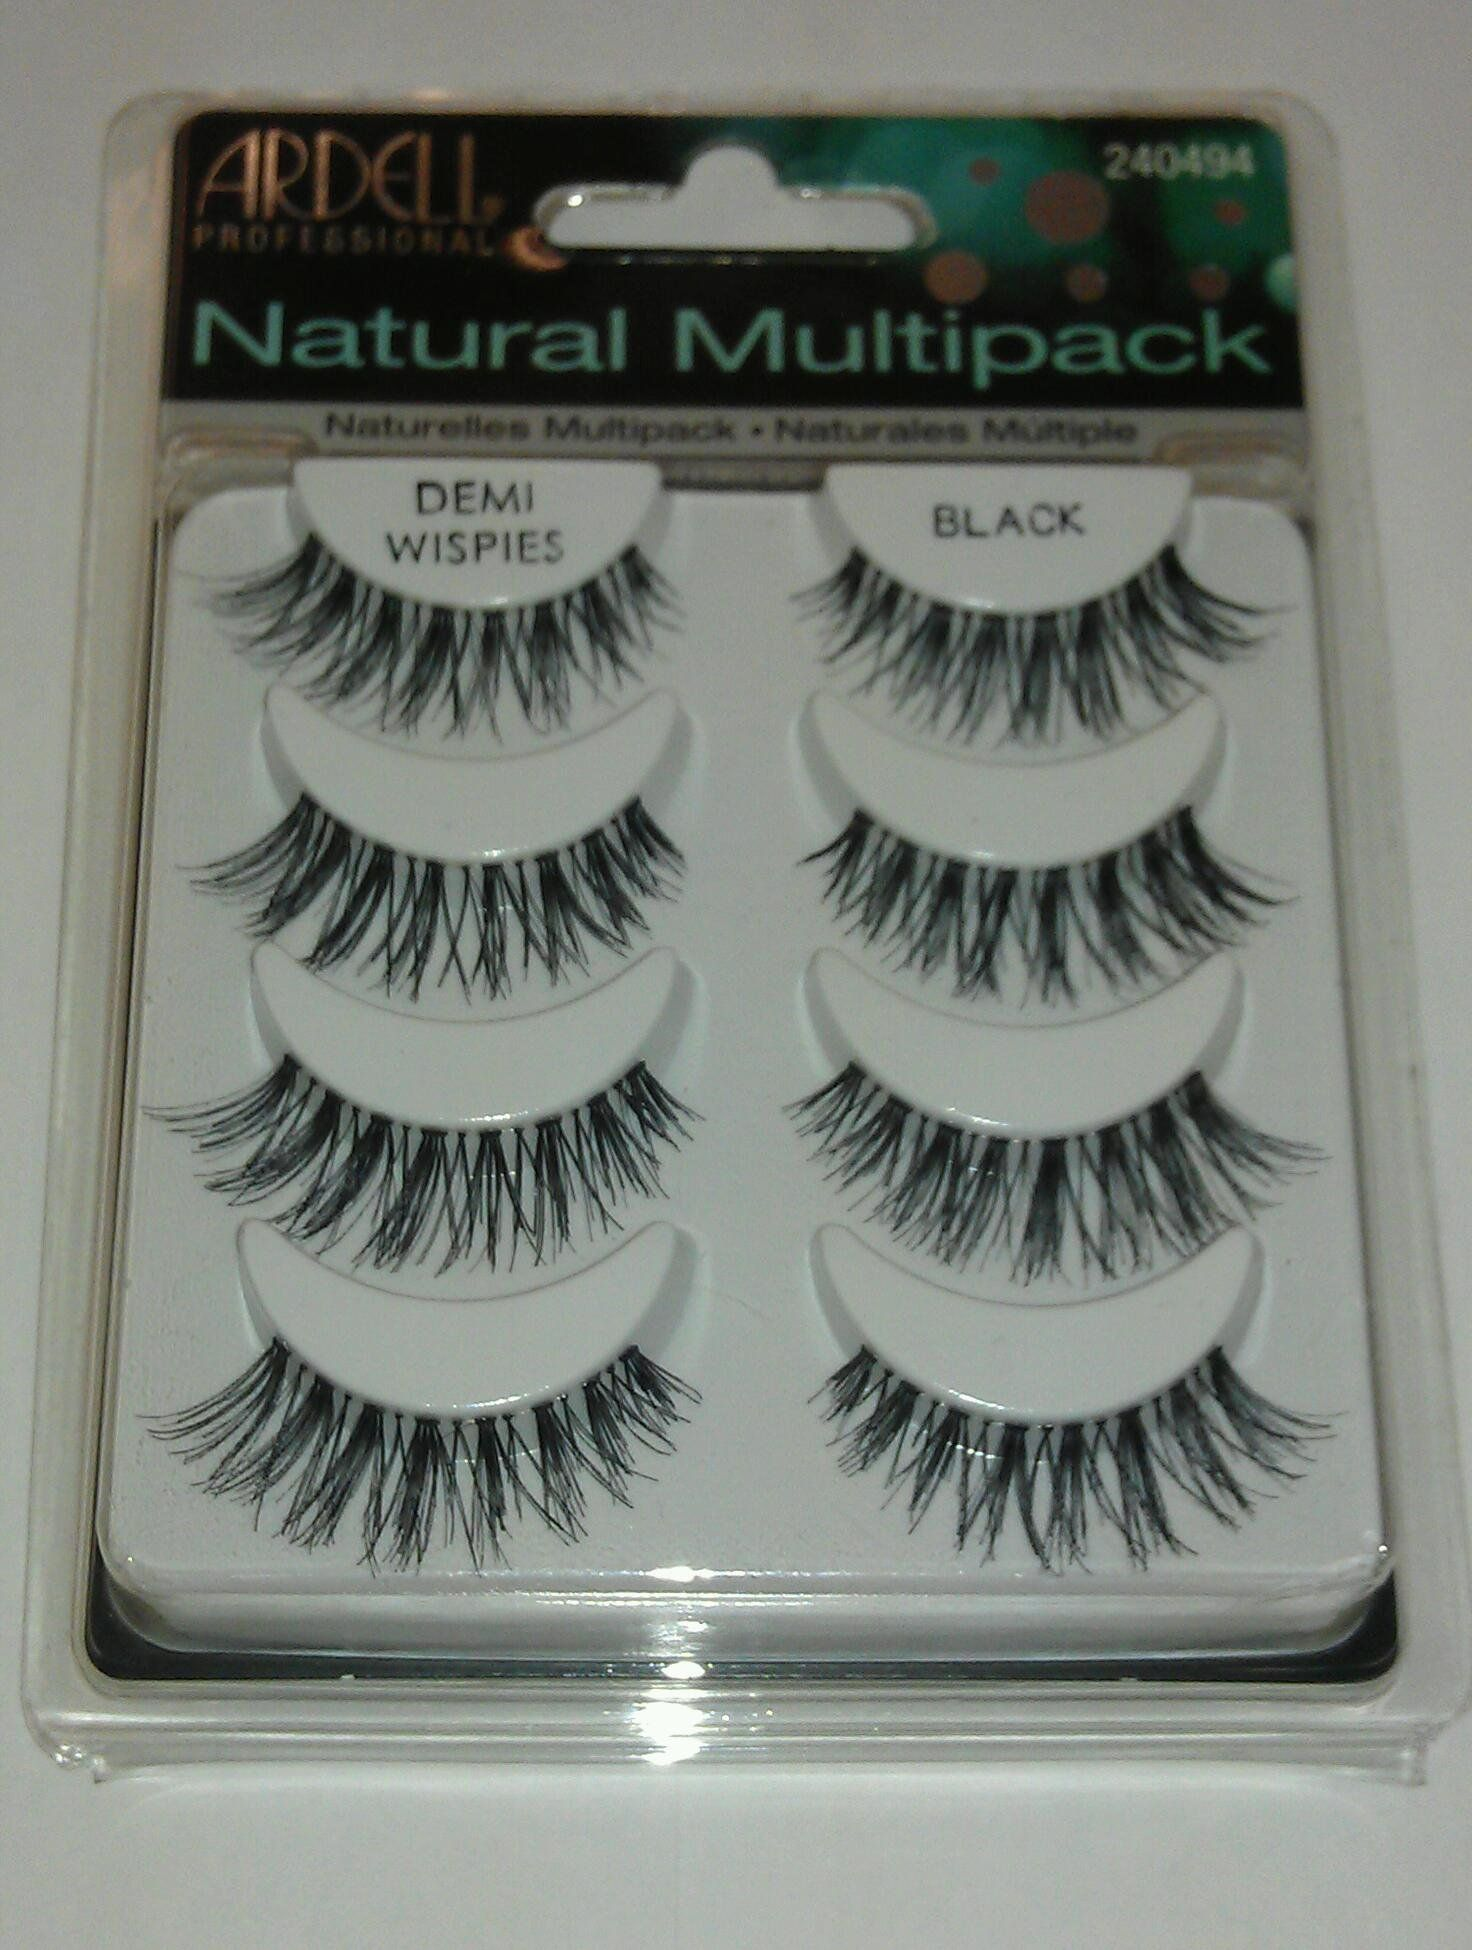 c8dbf0b72ba Ardell Fashion Lashes Black Demi Wispies Multipack. Lashes 1 Multipack = 4  pairs. Demi Wispies Black Lashes. Natural.